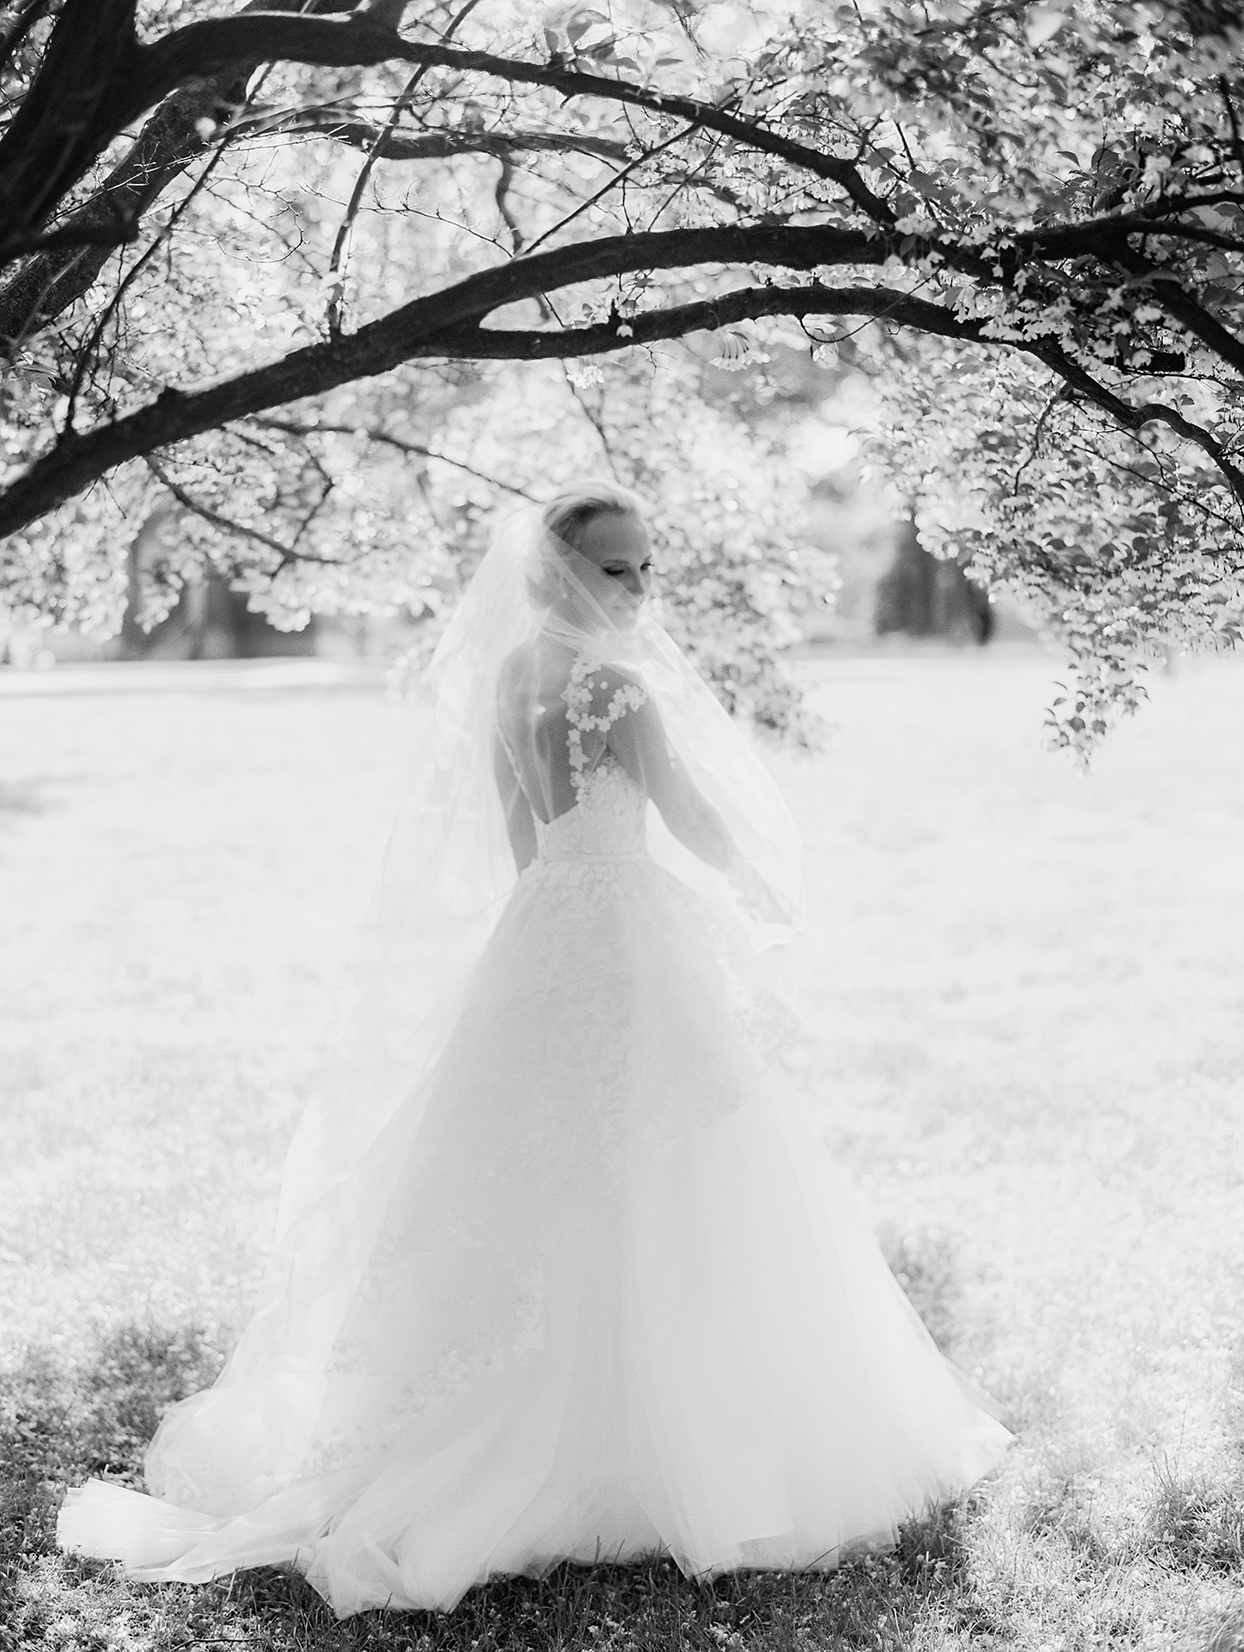 gigi kyle bride in wedding dress under tree